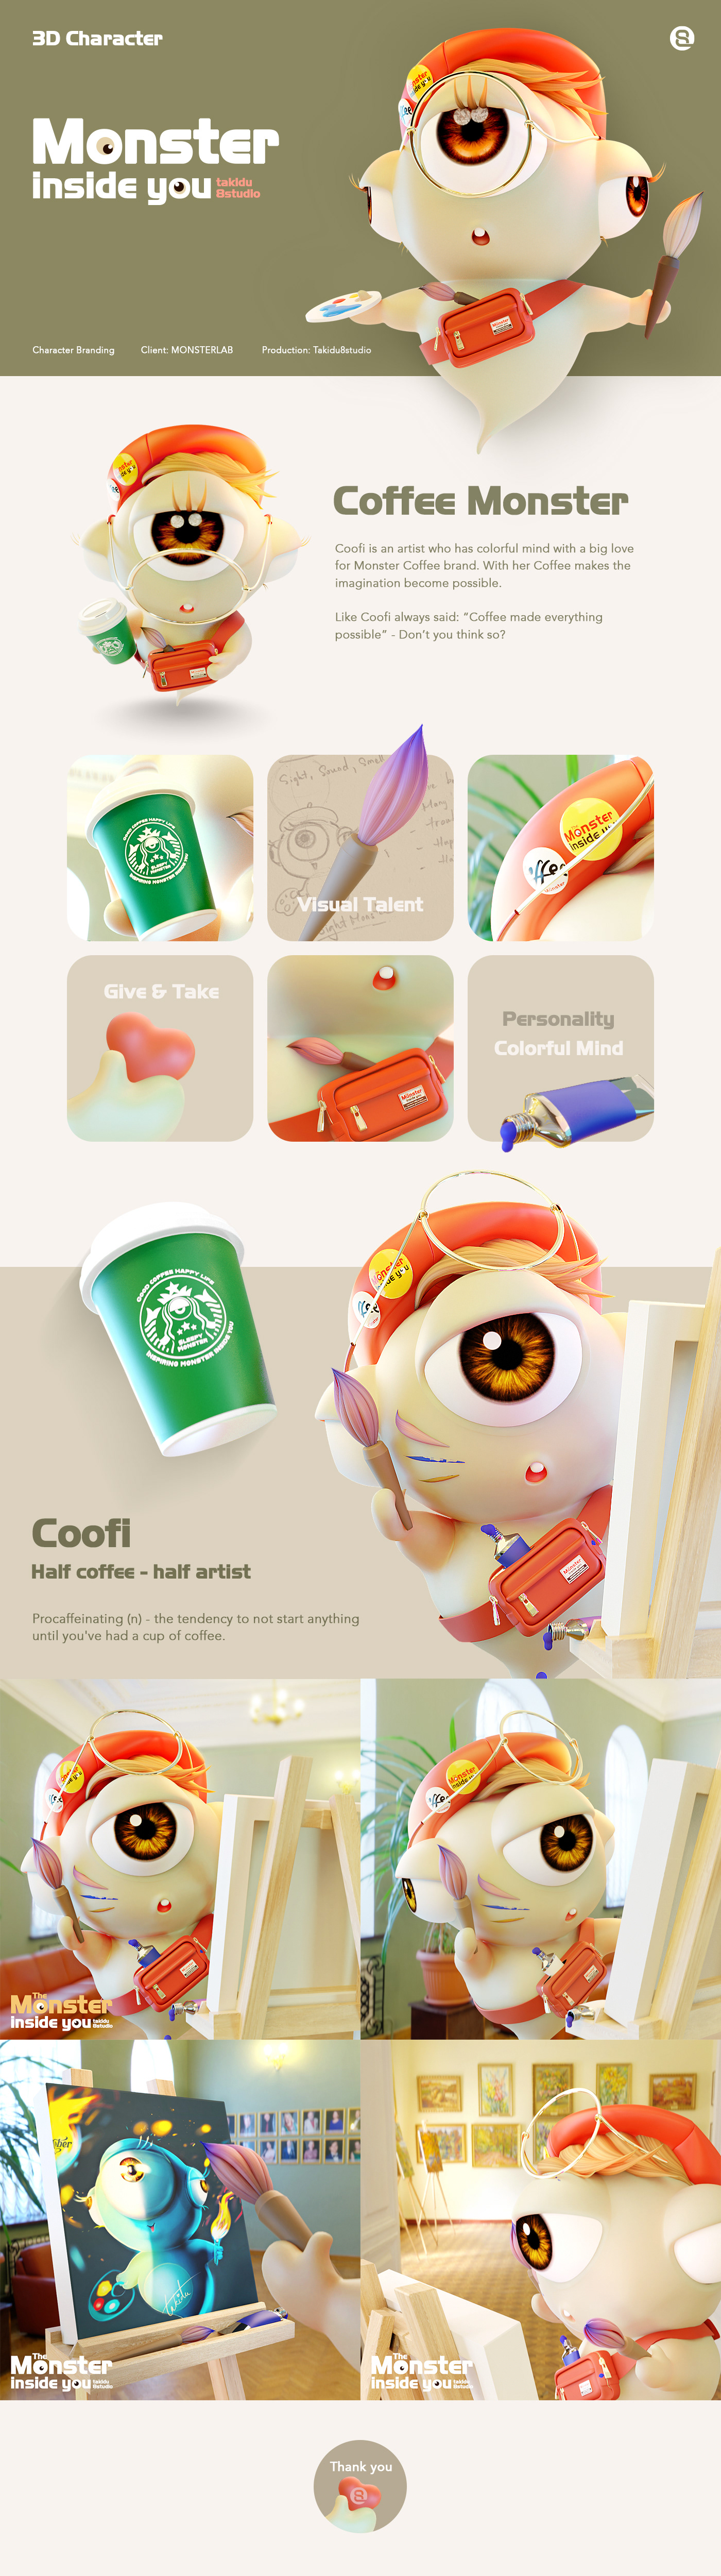 Coofi is an artist who has colorful mind with a big love for Monster Coffee brand.